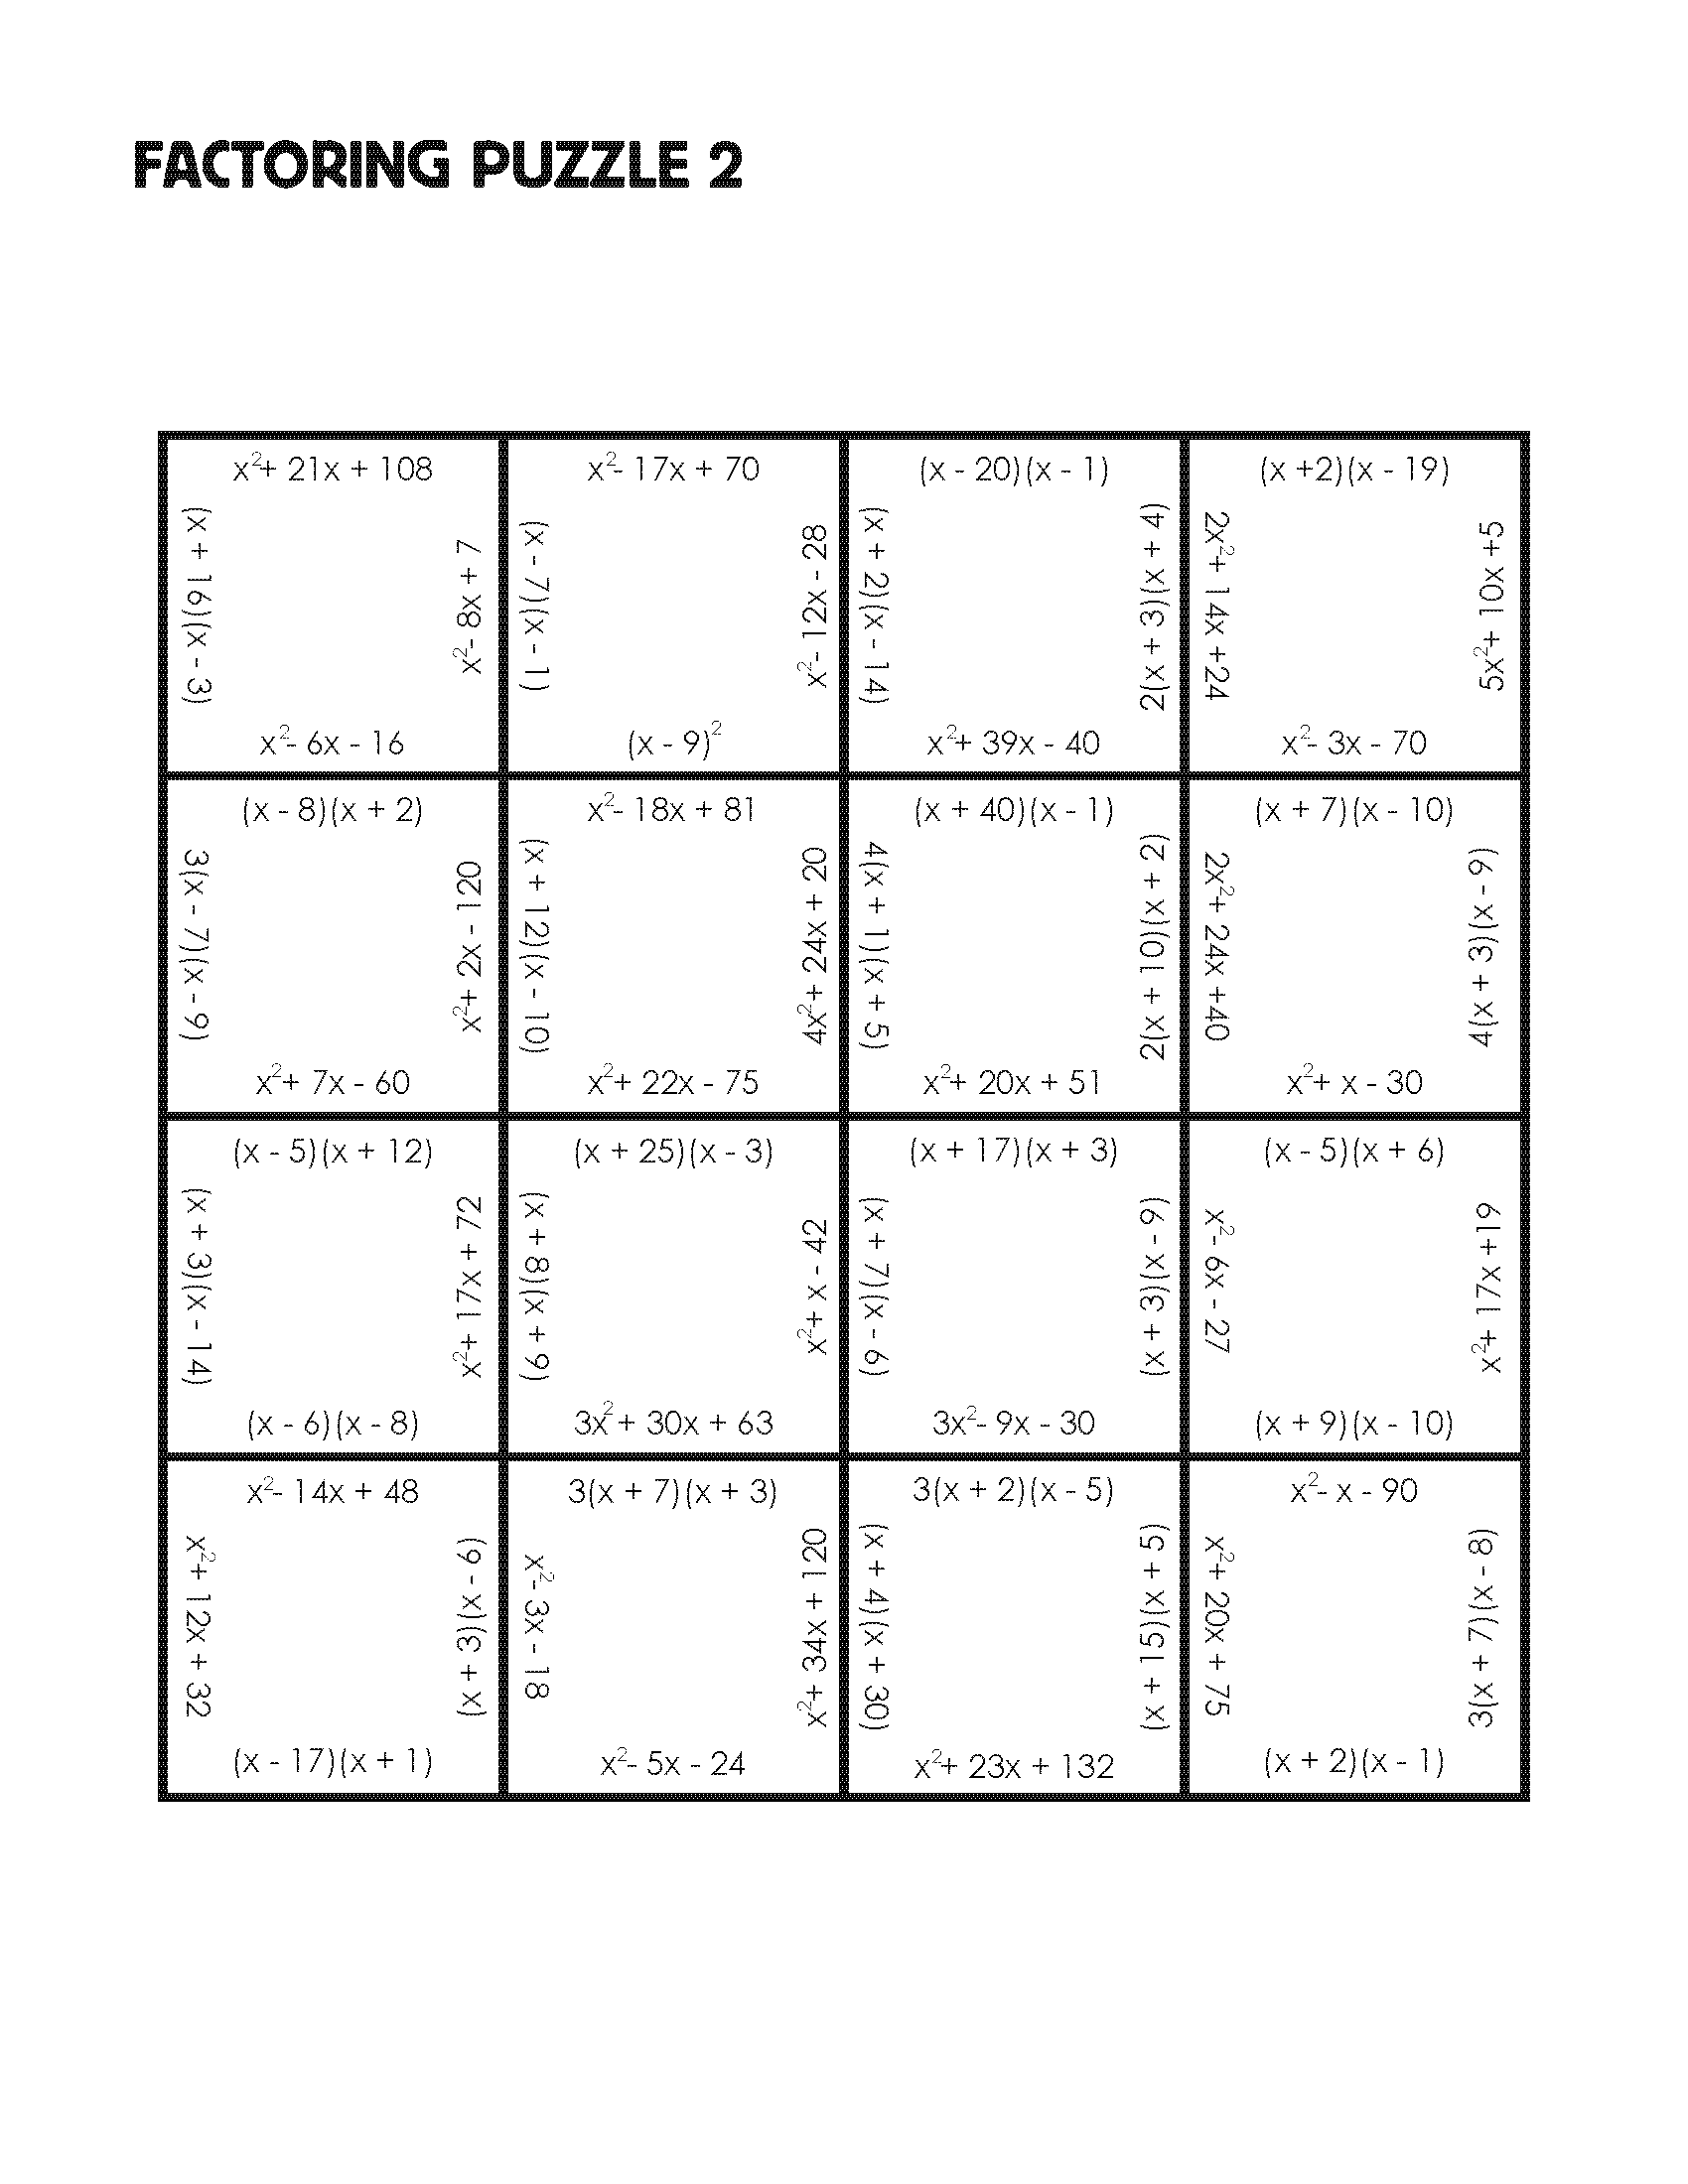 worksheet Factoring Trinomials Practice Worksheet factoring puzzle practice version mrmillermath factorpuzzlechallenge